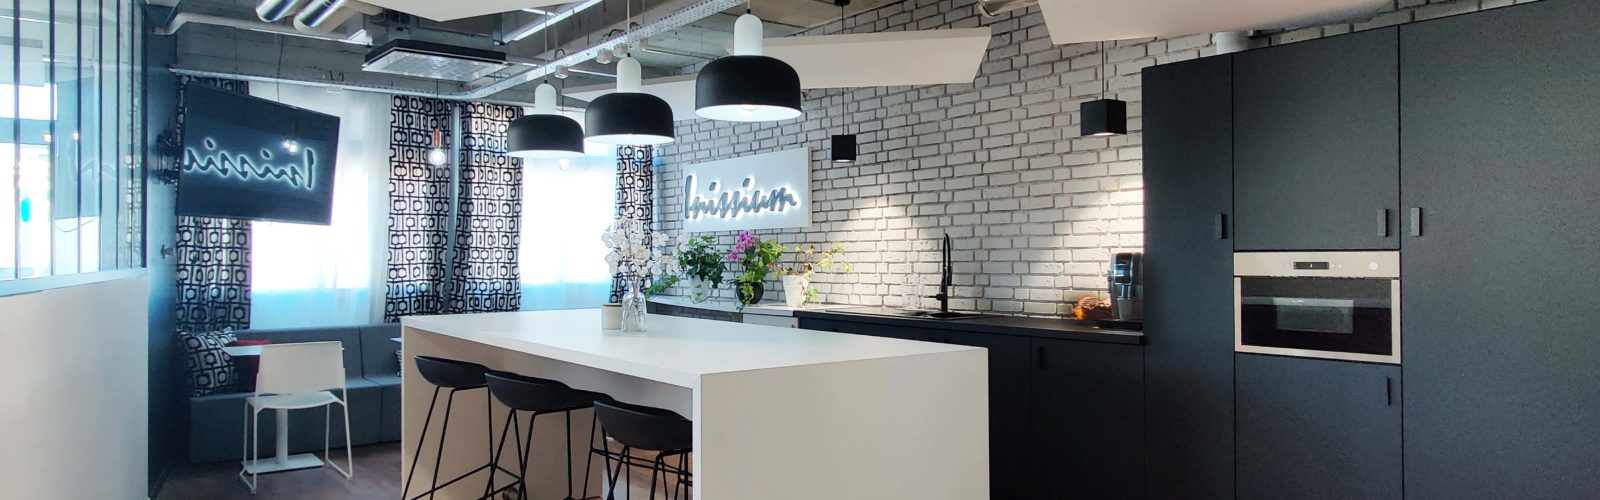 #workcafe#biophilicdesign#architecturedesign#interiodesign#cafeteria#officedesign#amenagement#kitchen#coffeecorner#waterfountain#QVT#styleindustriel#hay